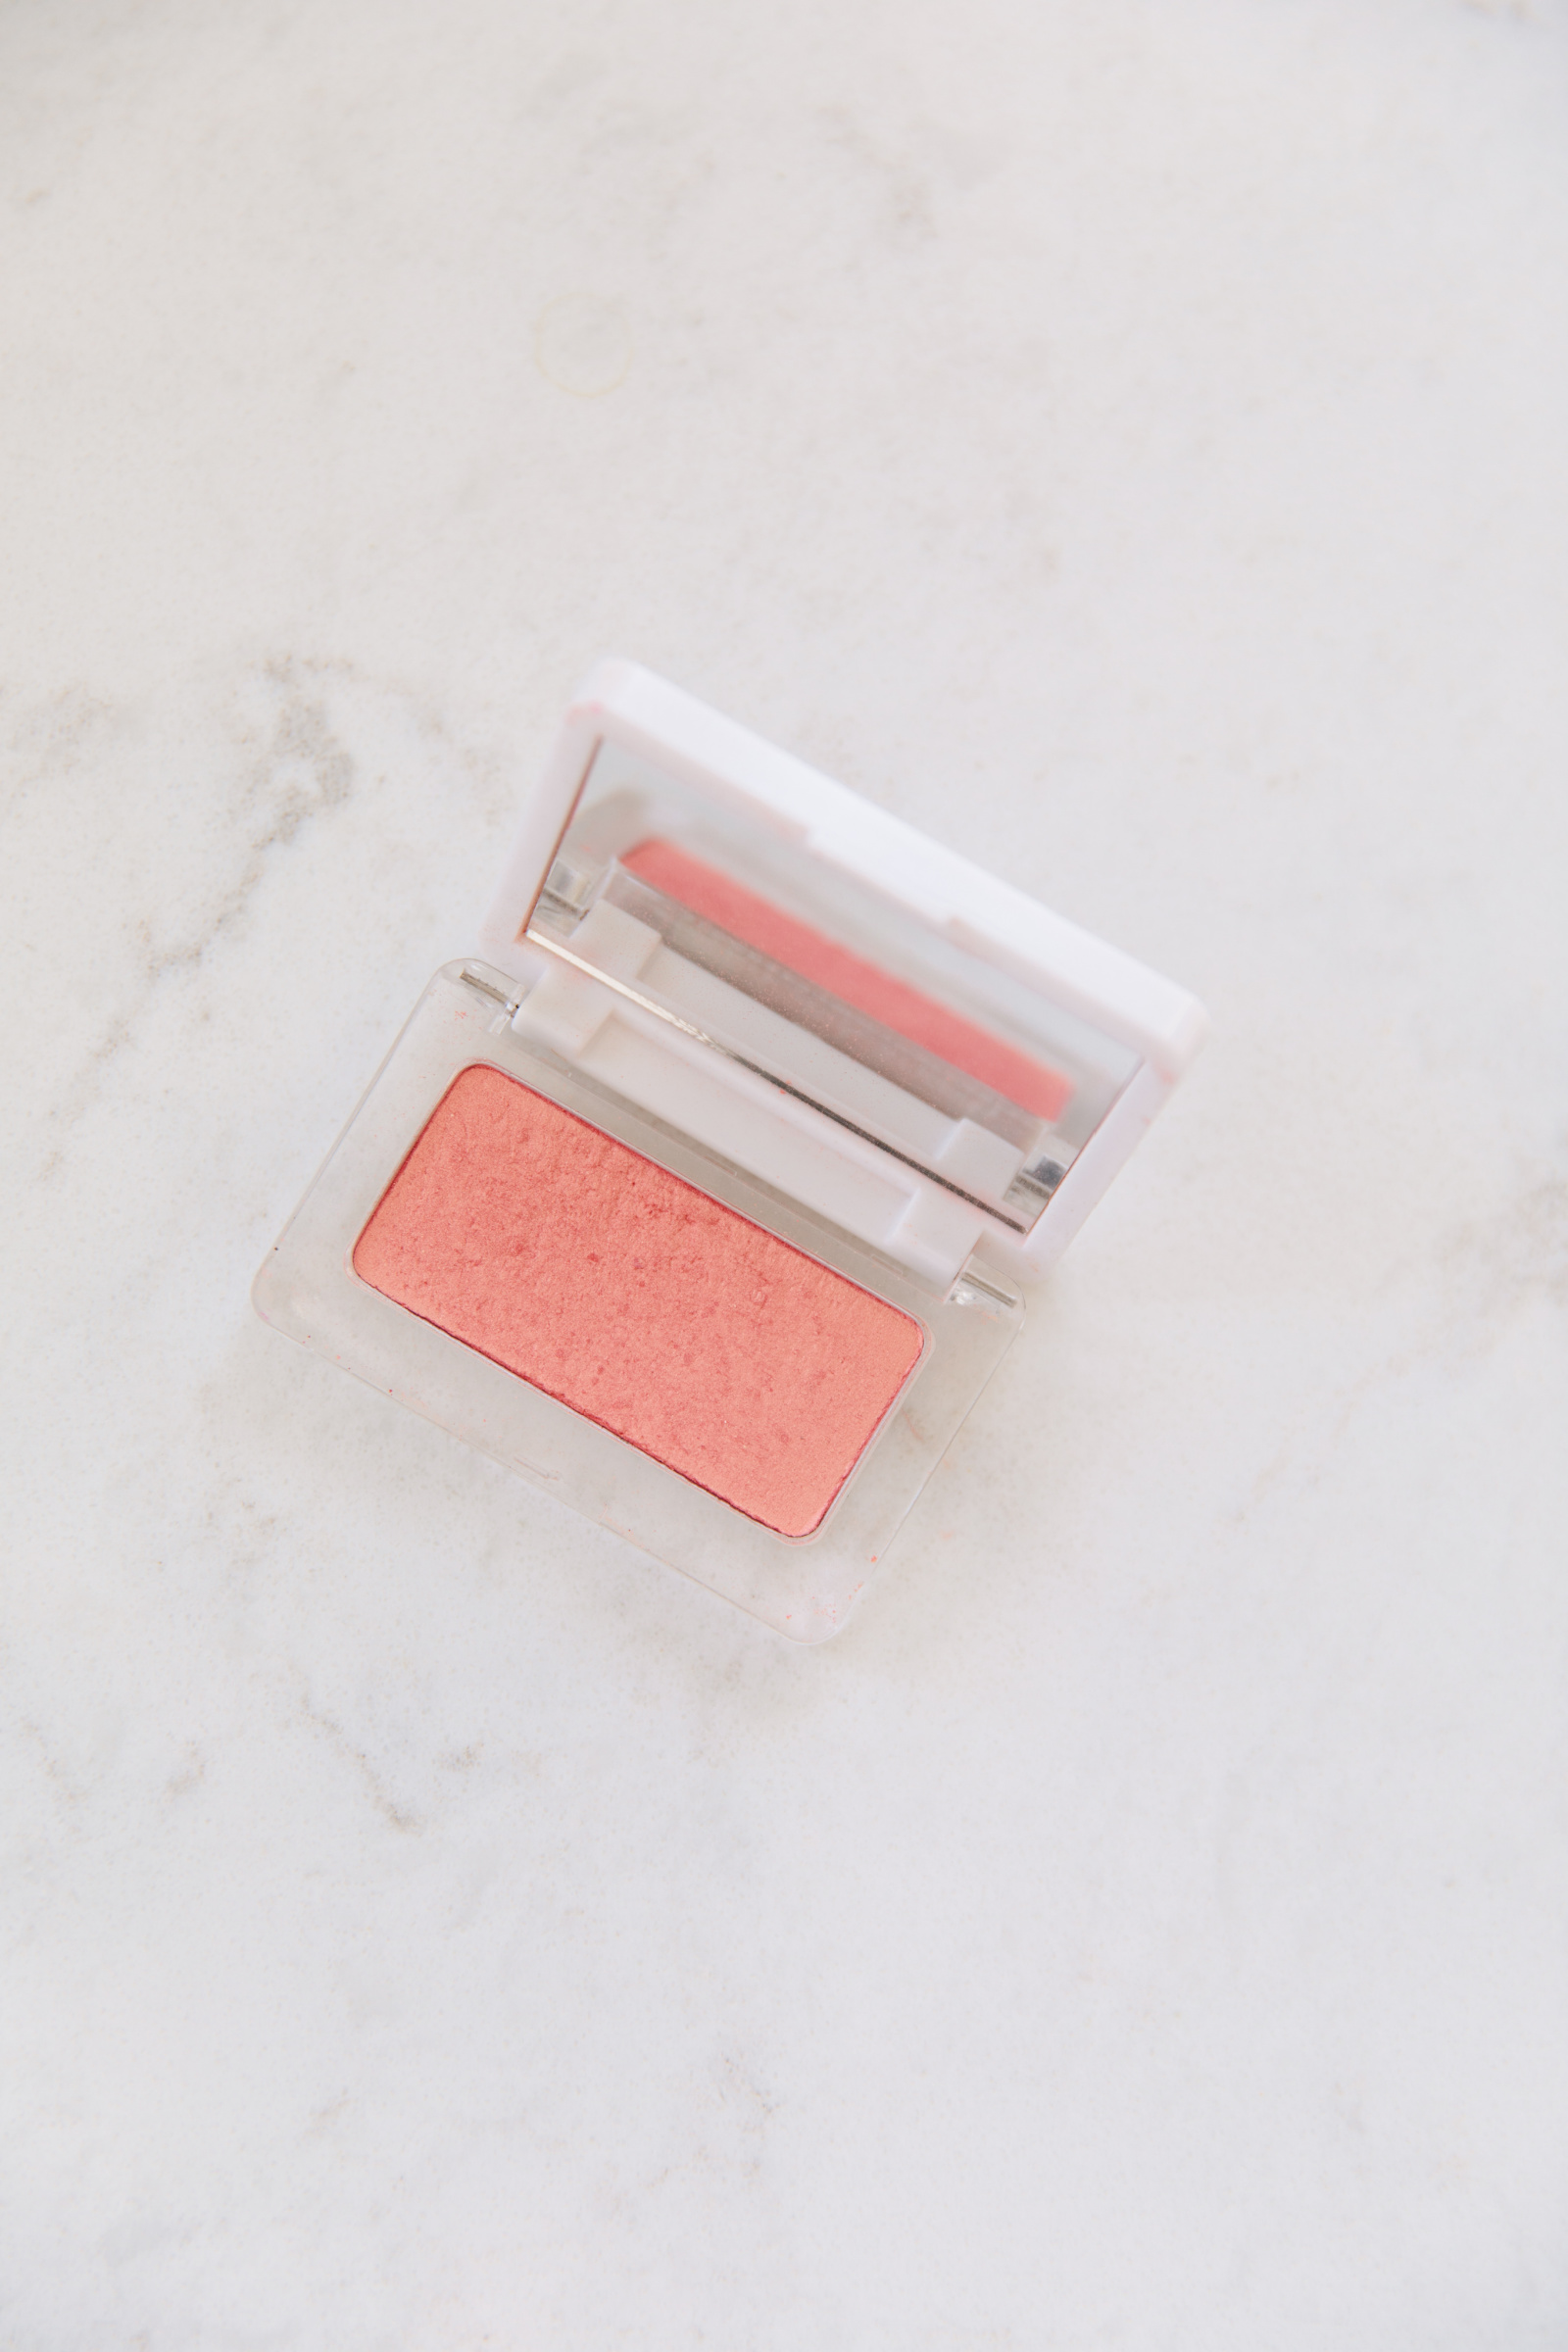 The Best Clean Beauty Blushes